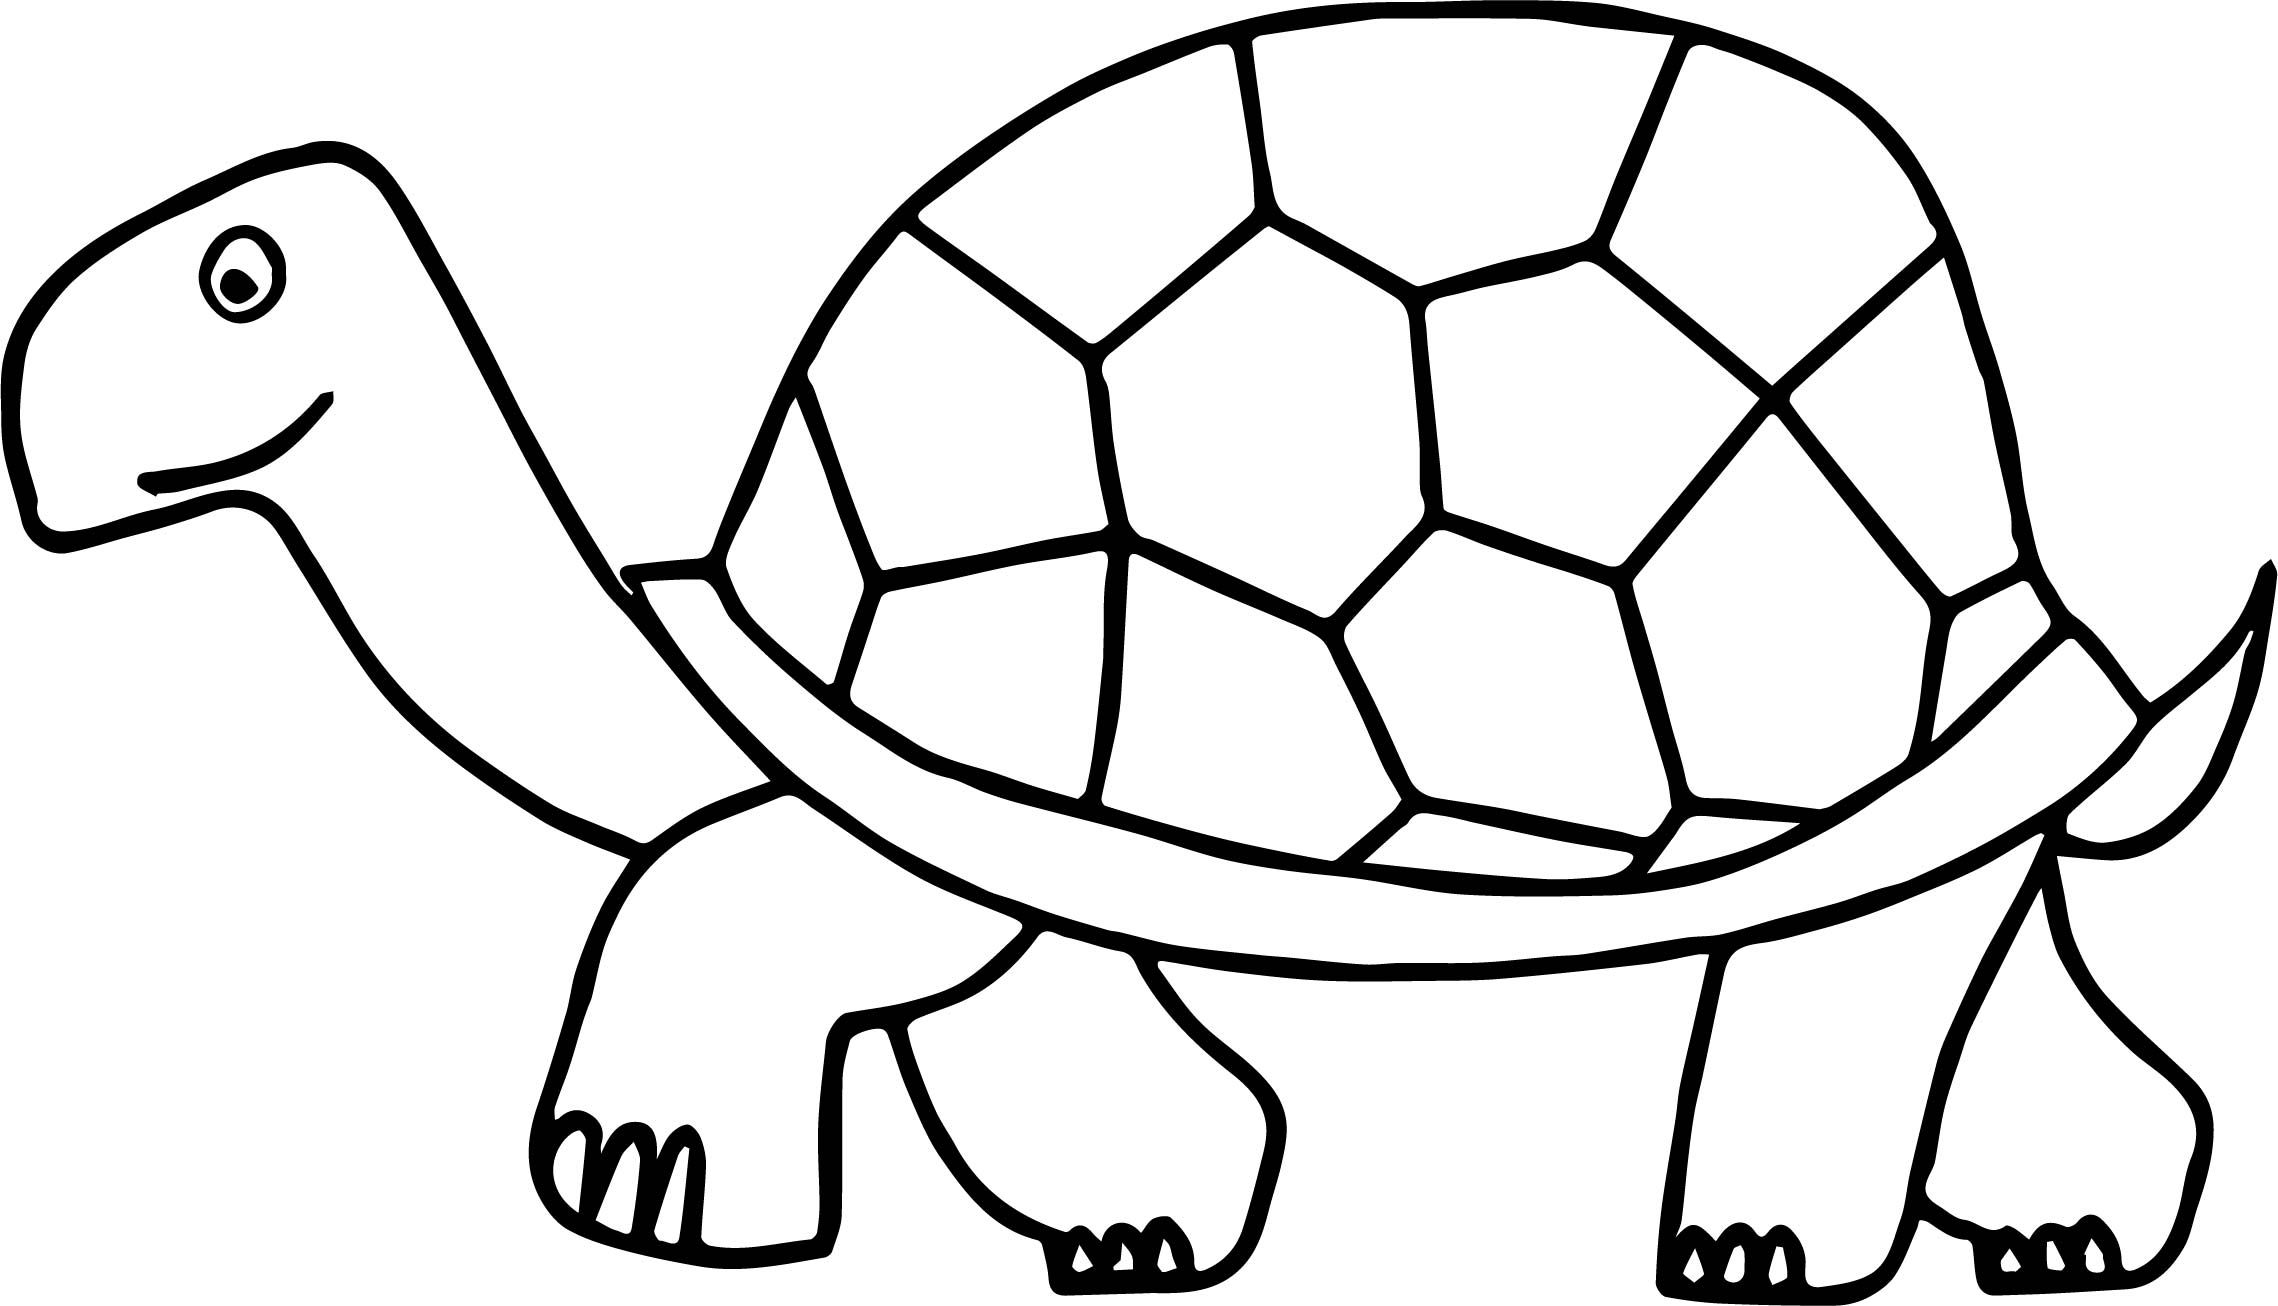 Cool Walking Tortoise Turtle Coloring Page